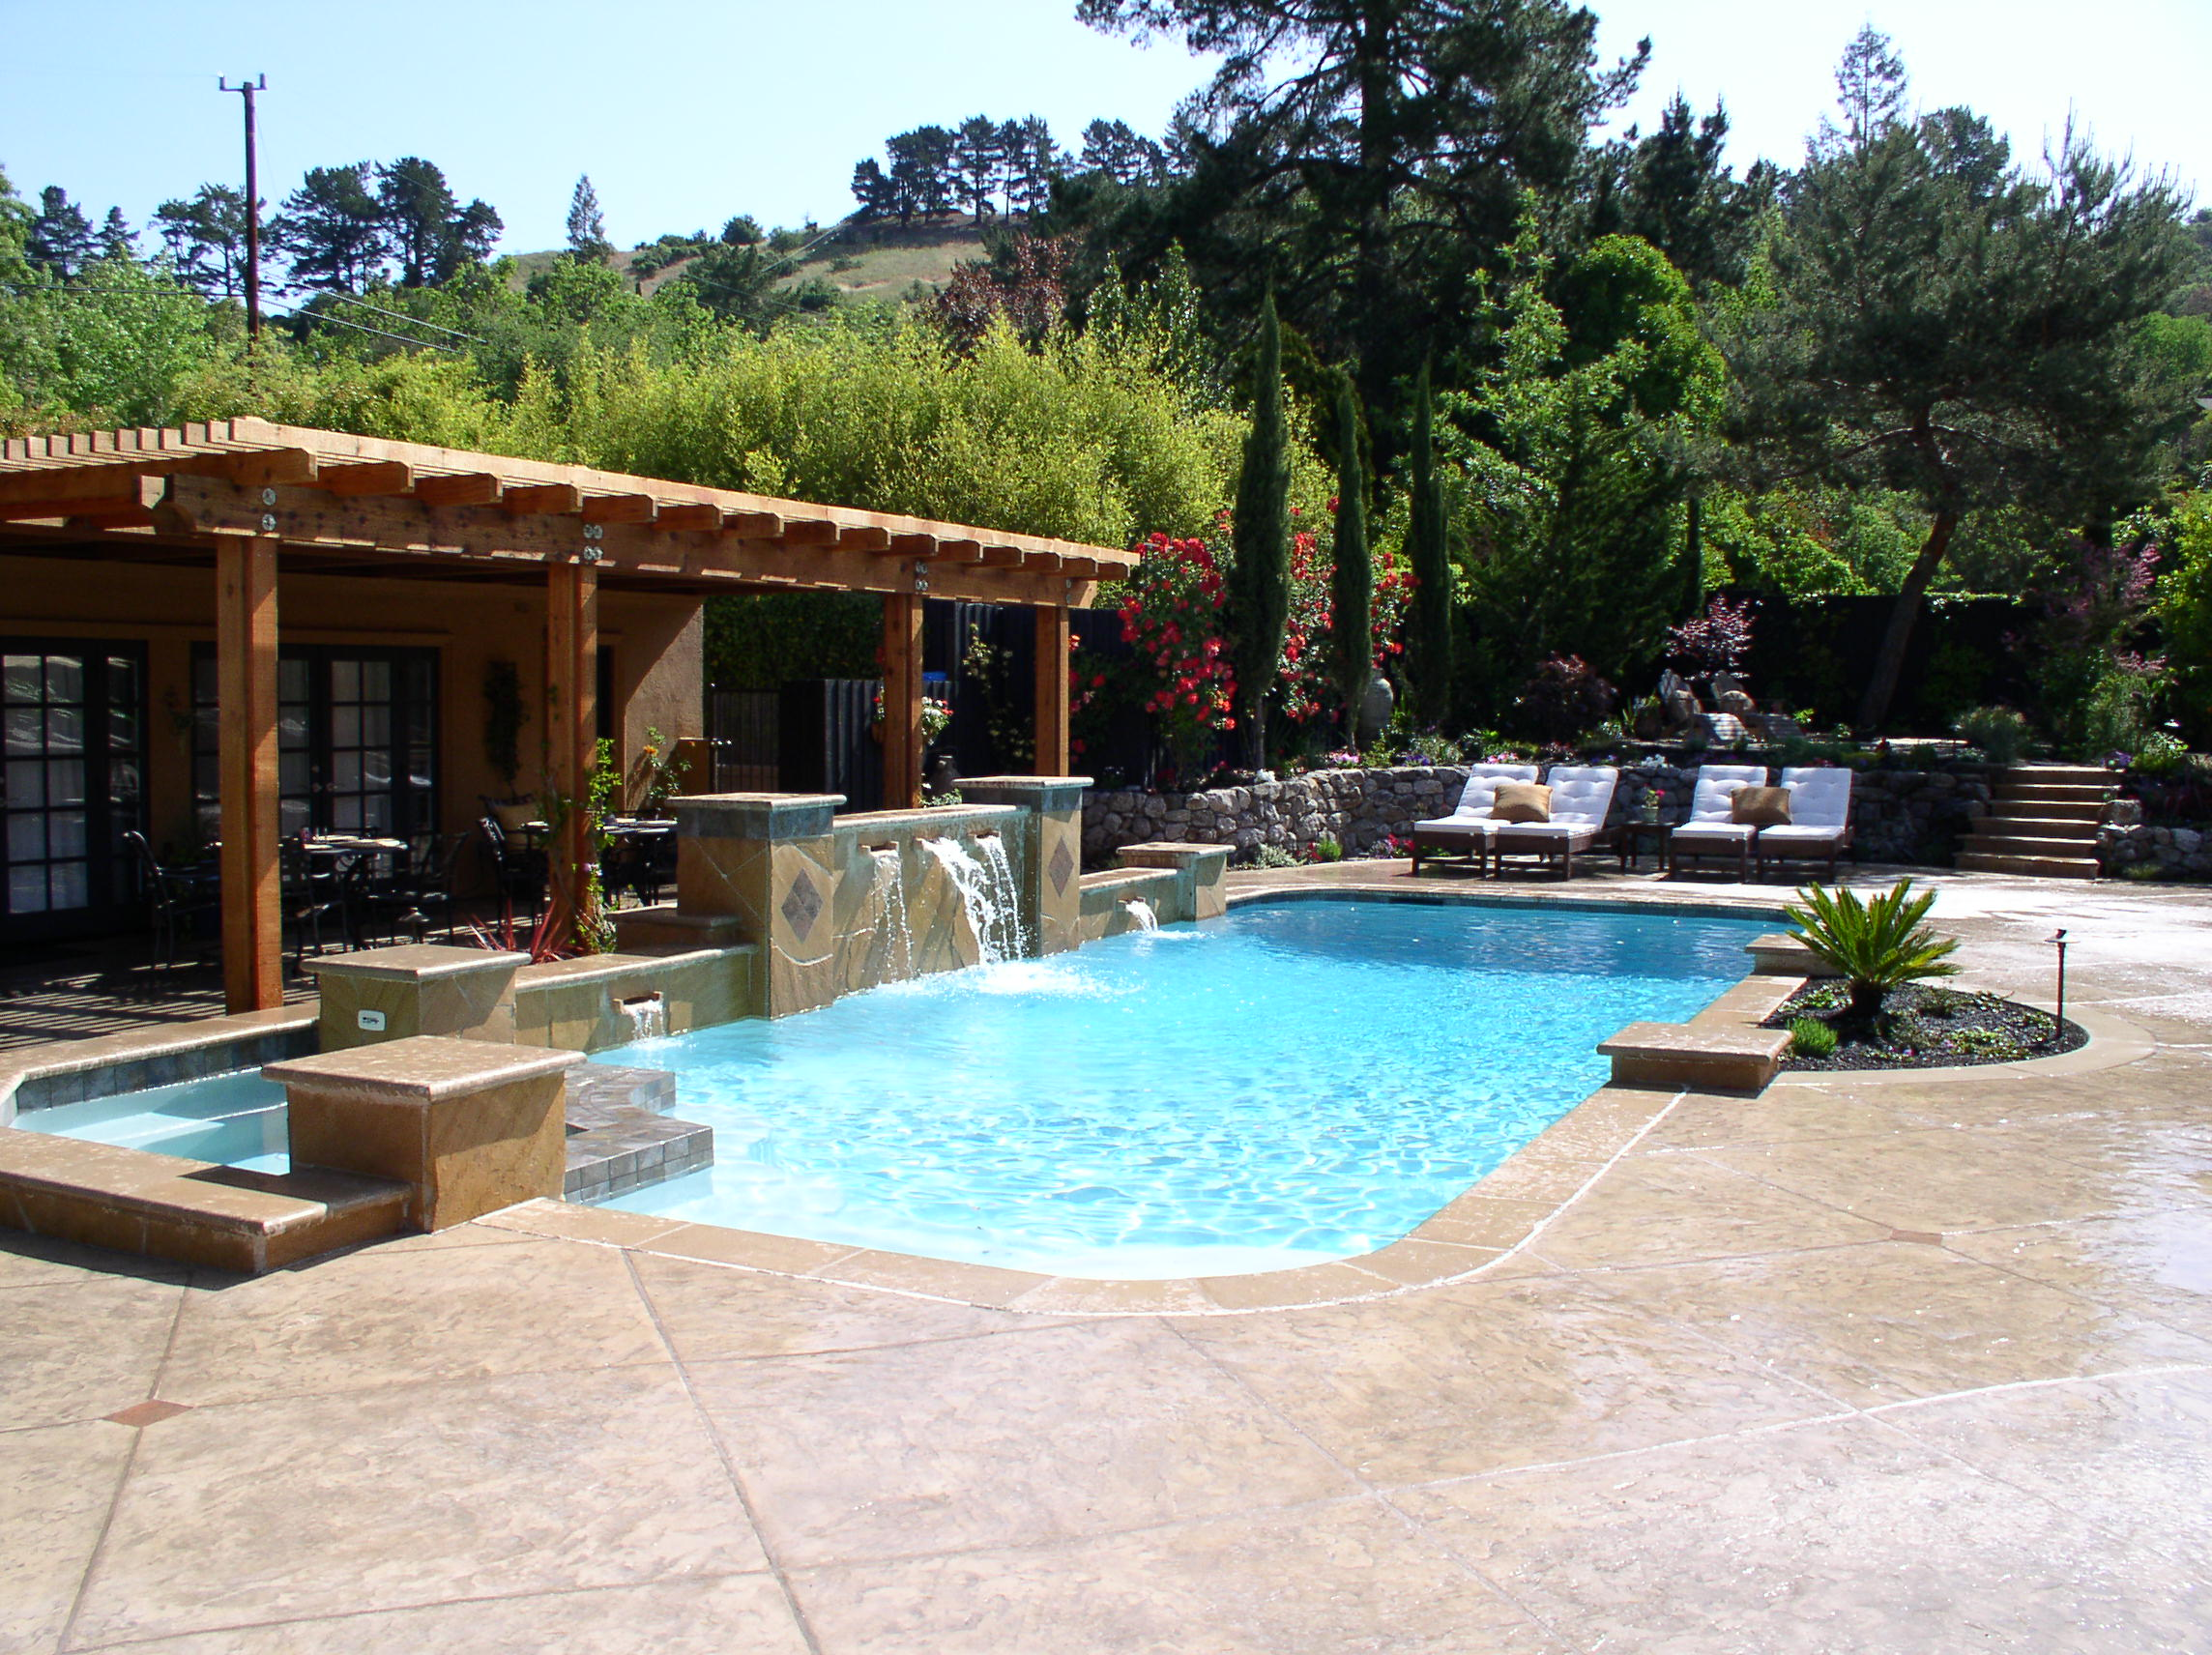 Swimming pool spa design and construction in walnut creek for Swimming pool and spa design